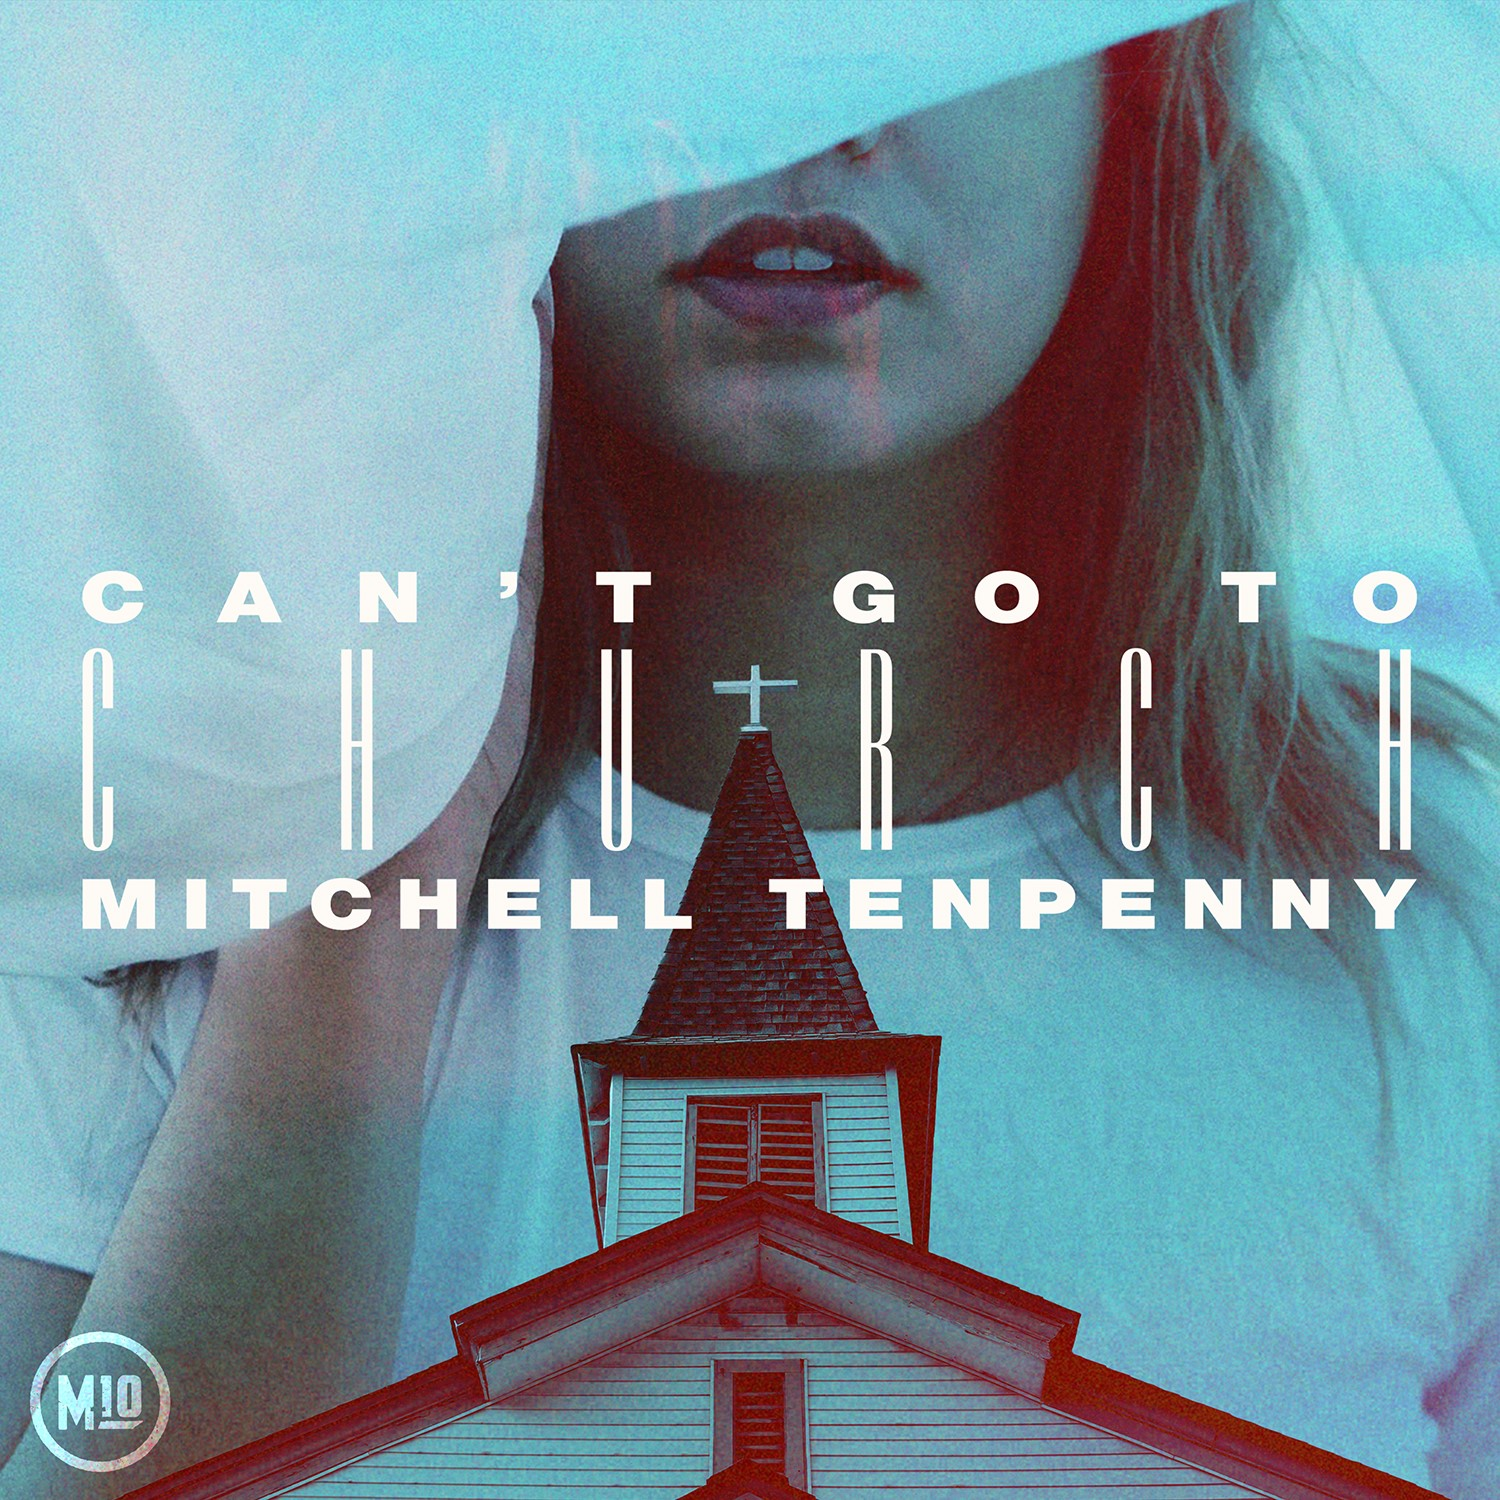 MITCHELL TENPENNY BRINGS MORE NEW DIGITAL MUSIC TO FANS